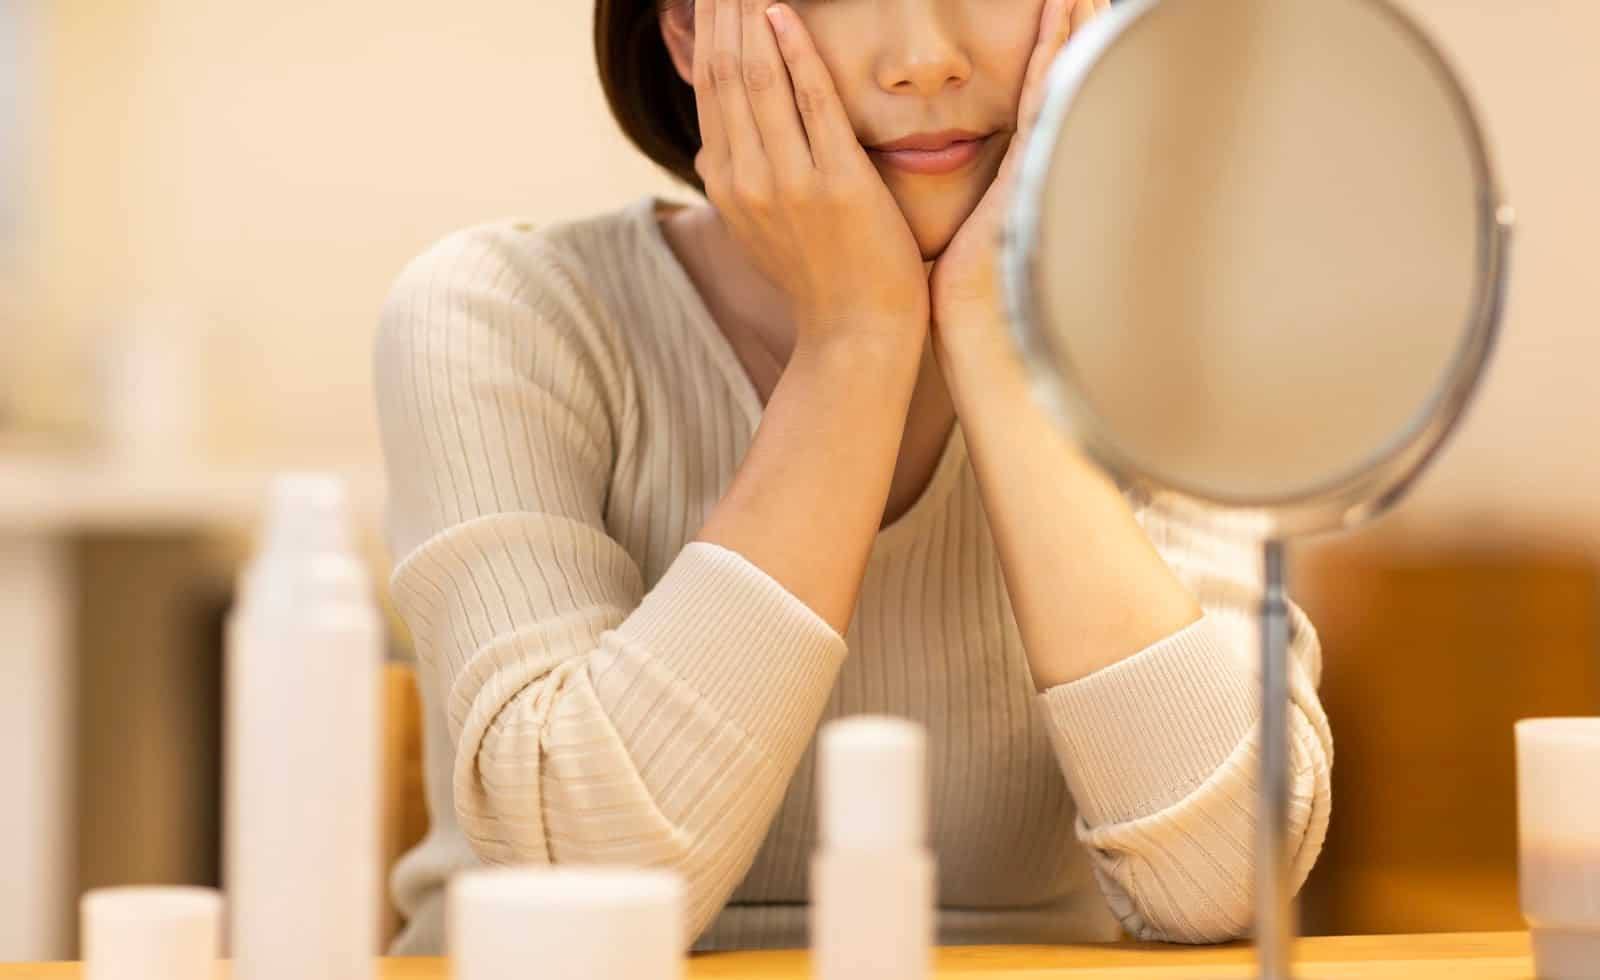 Woman prepping for her nighttime beauty routine